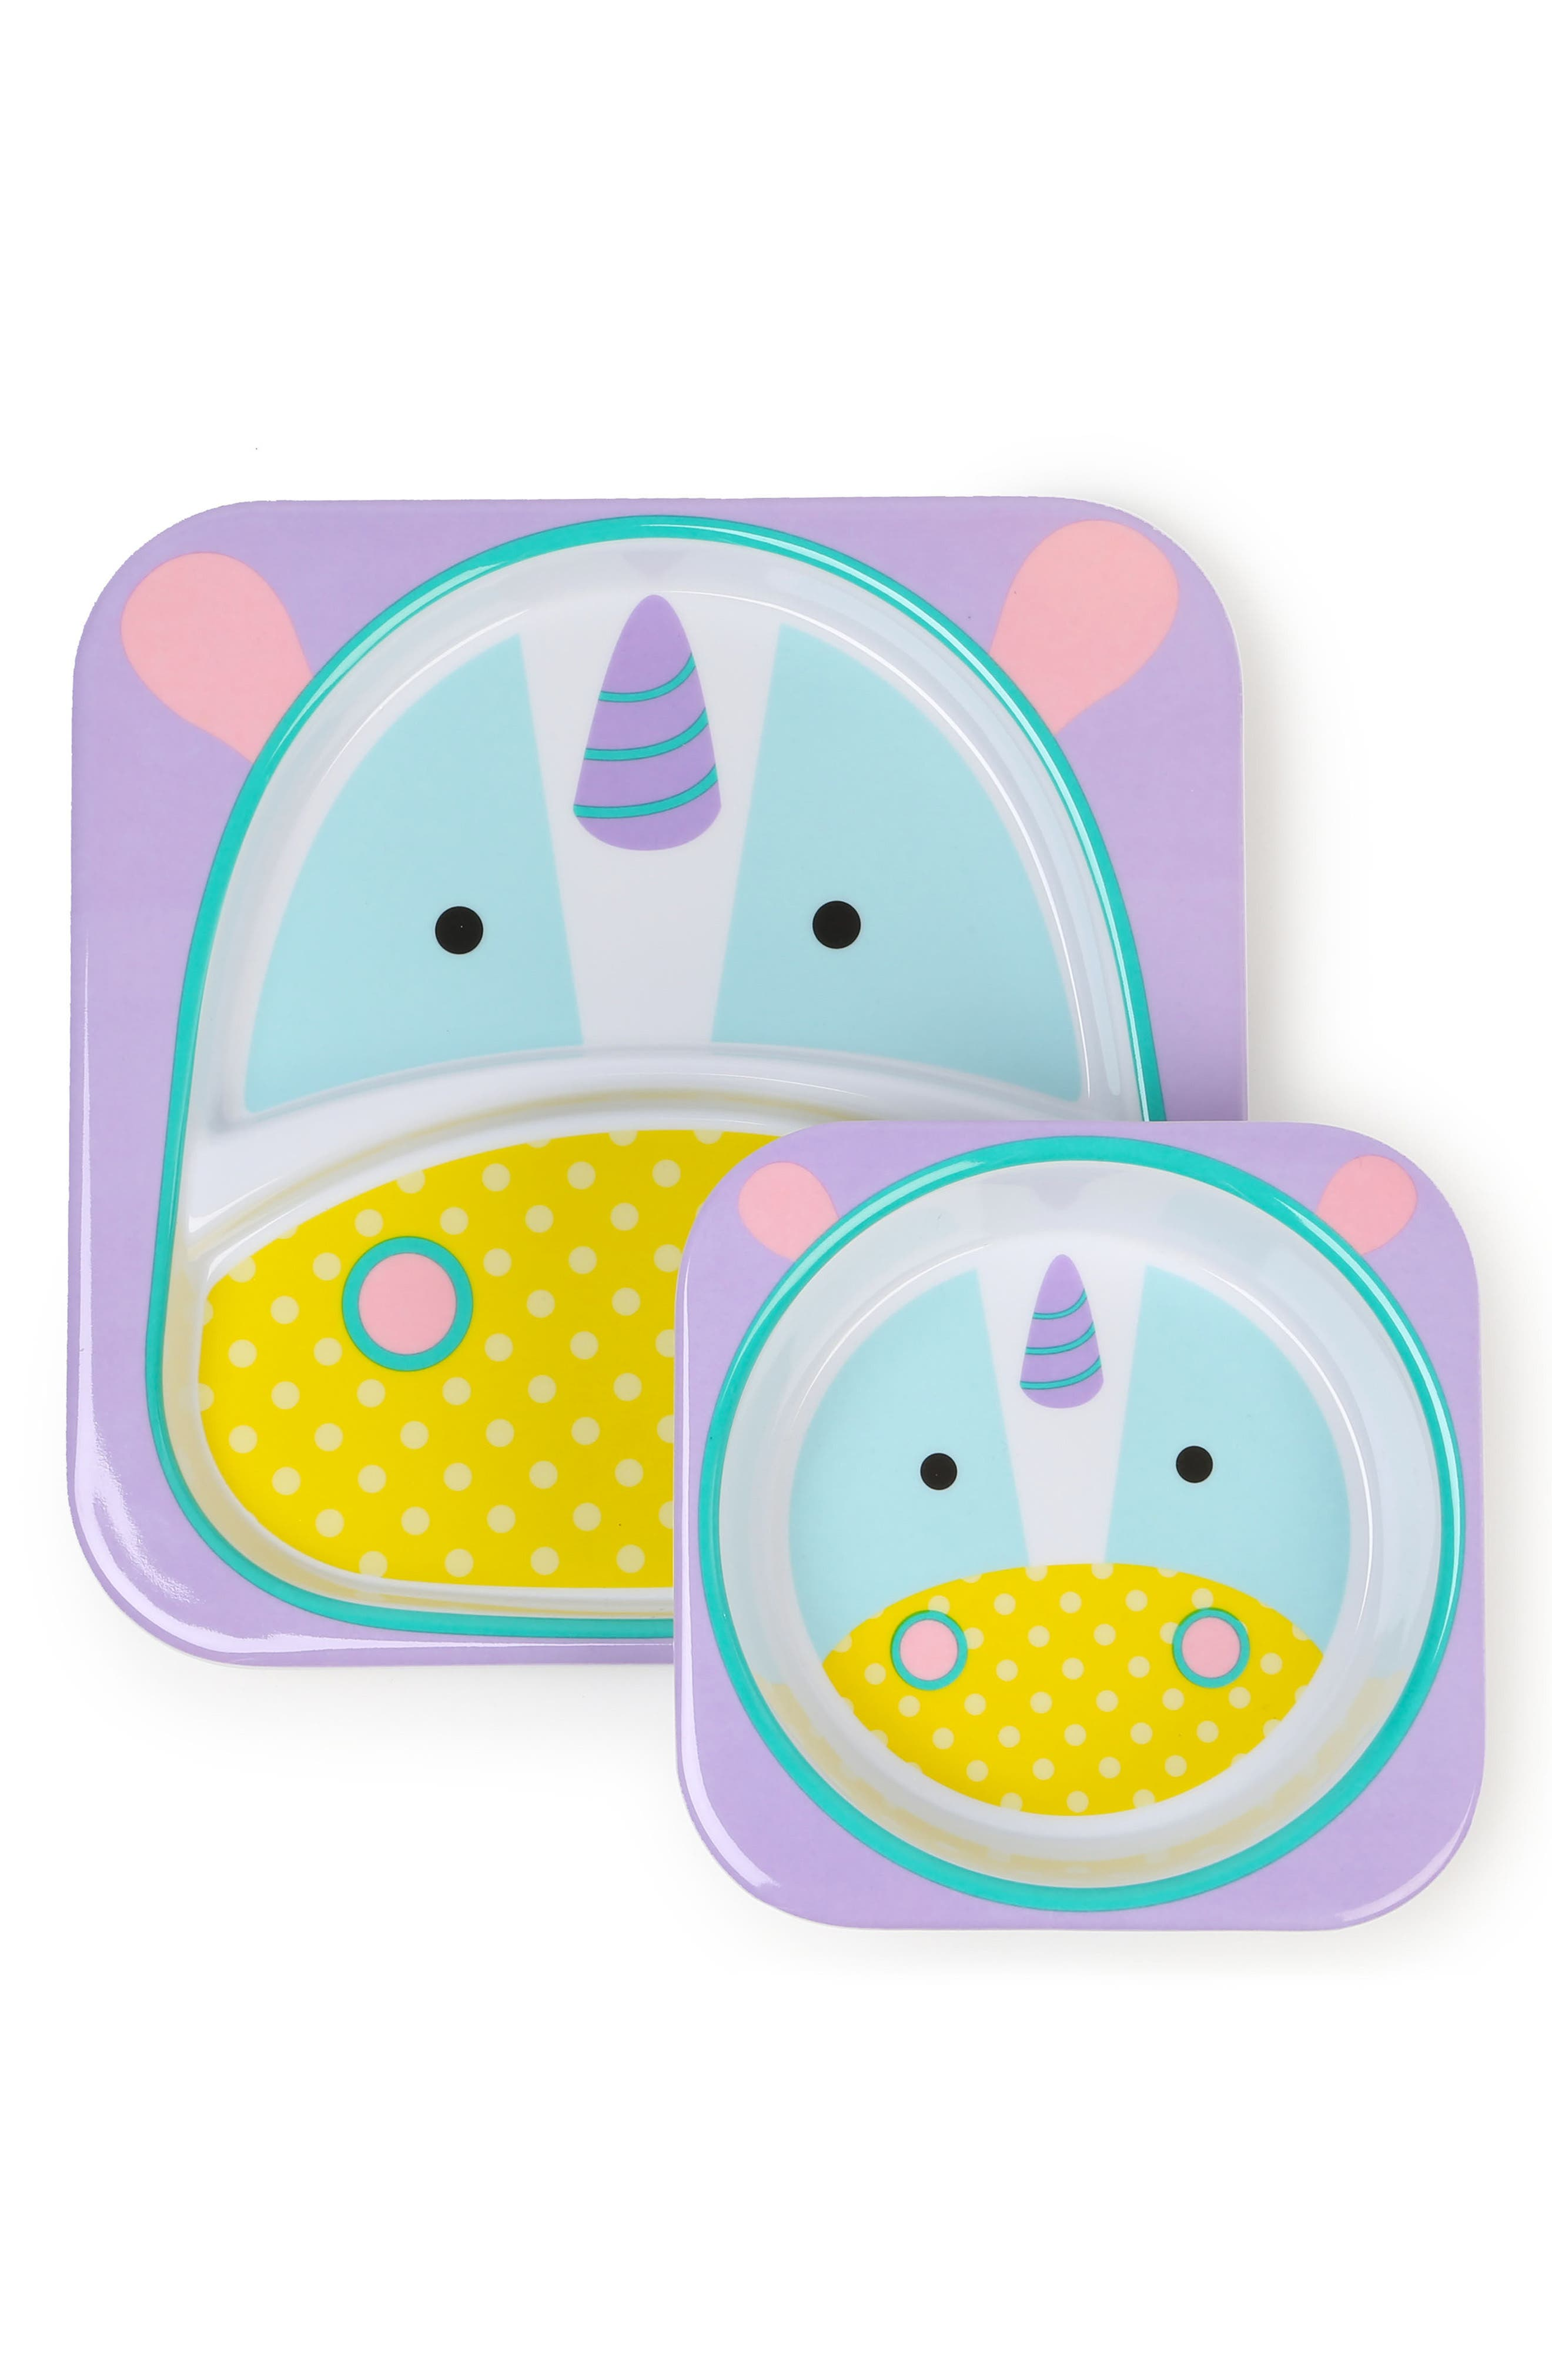 Butterfly Zoo Melamine Plate & Bowl Set,                             Main thumbnail 1, color,                             402